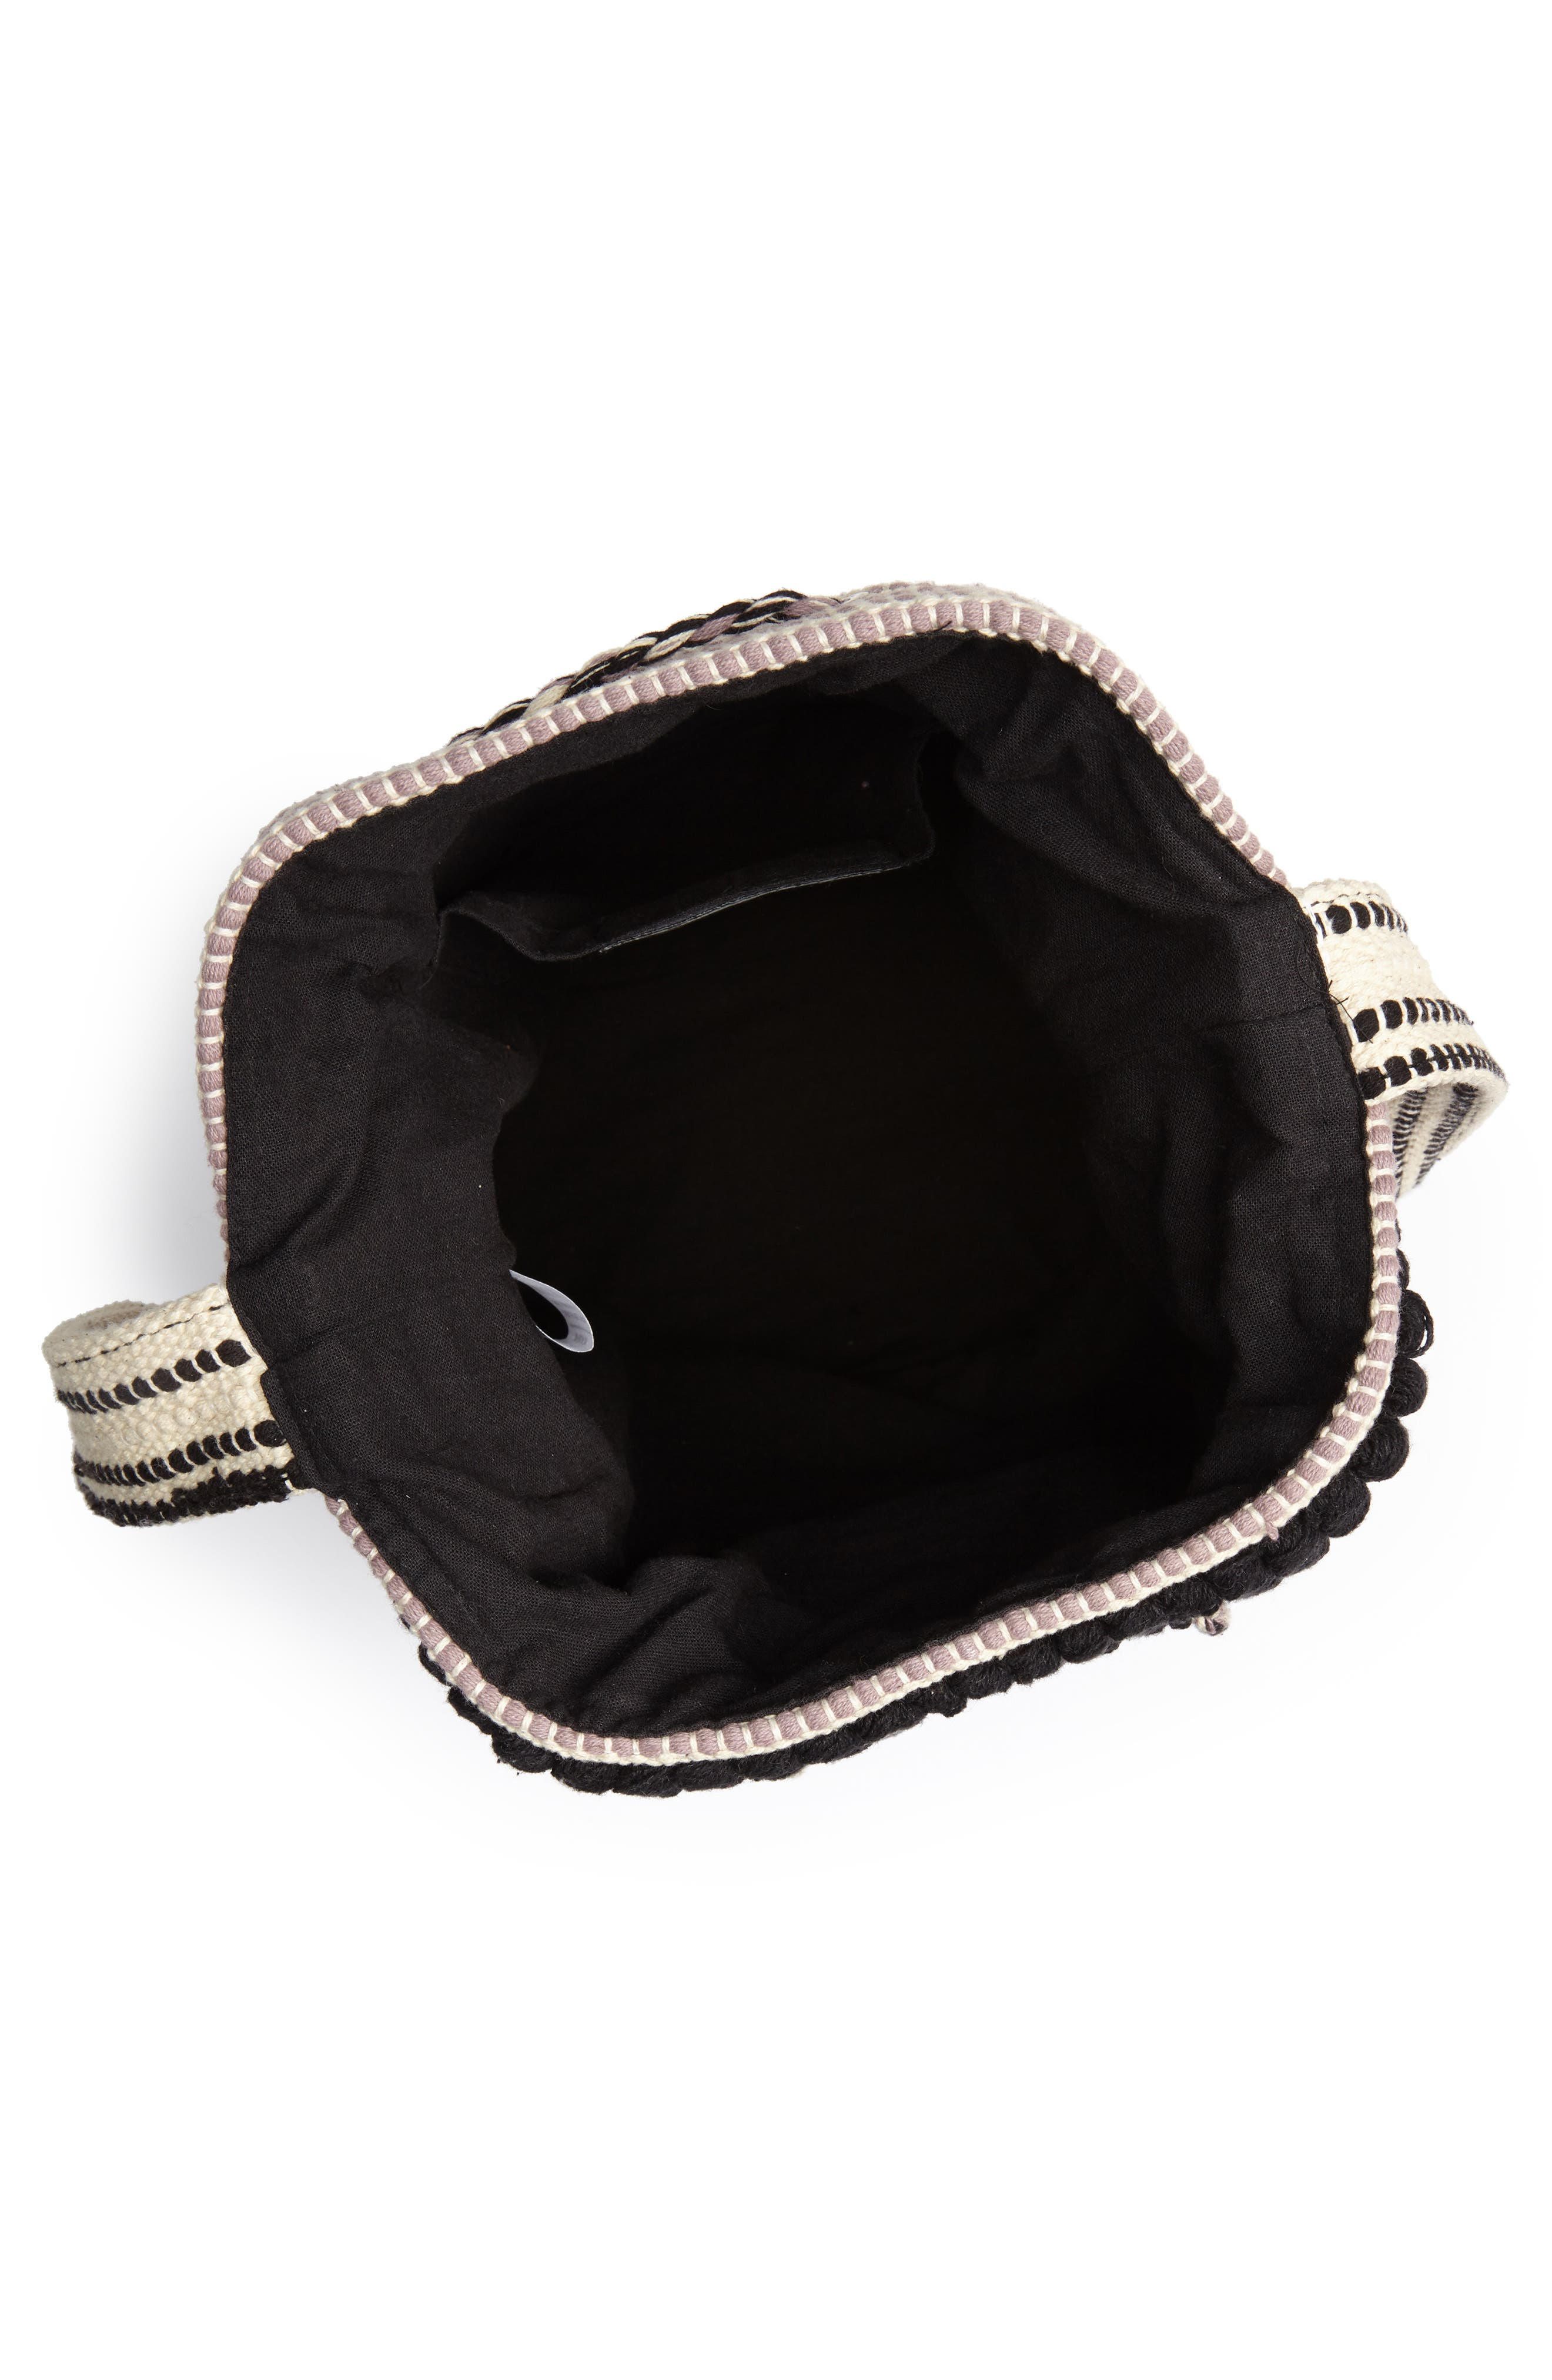 Halay Woven Bucket Bag,                             Alternate thumbnail 4, color,                             BLACK/ CREAM